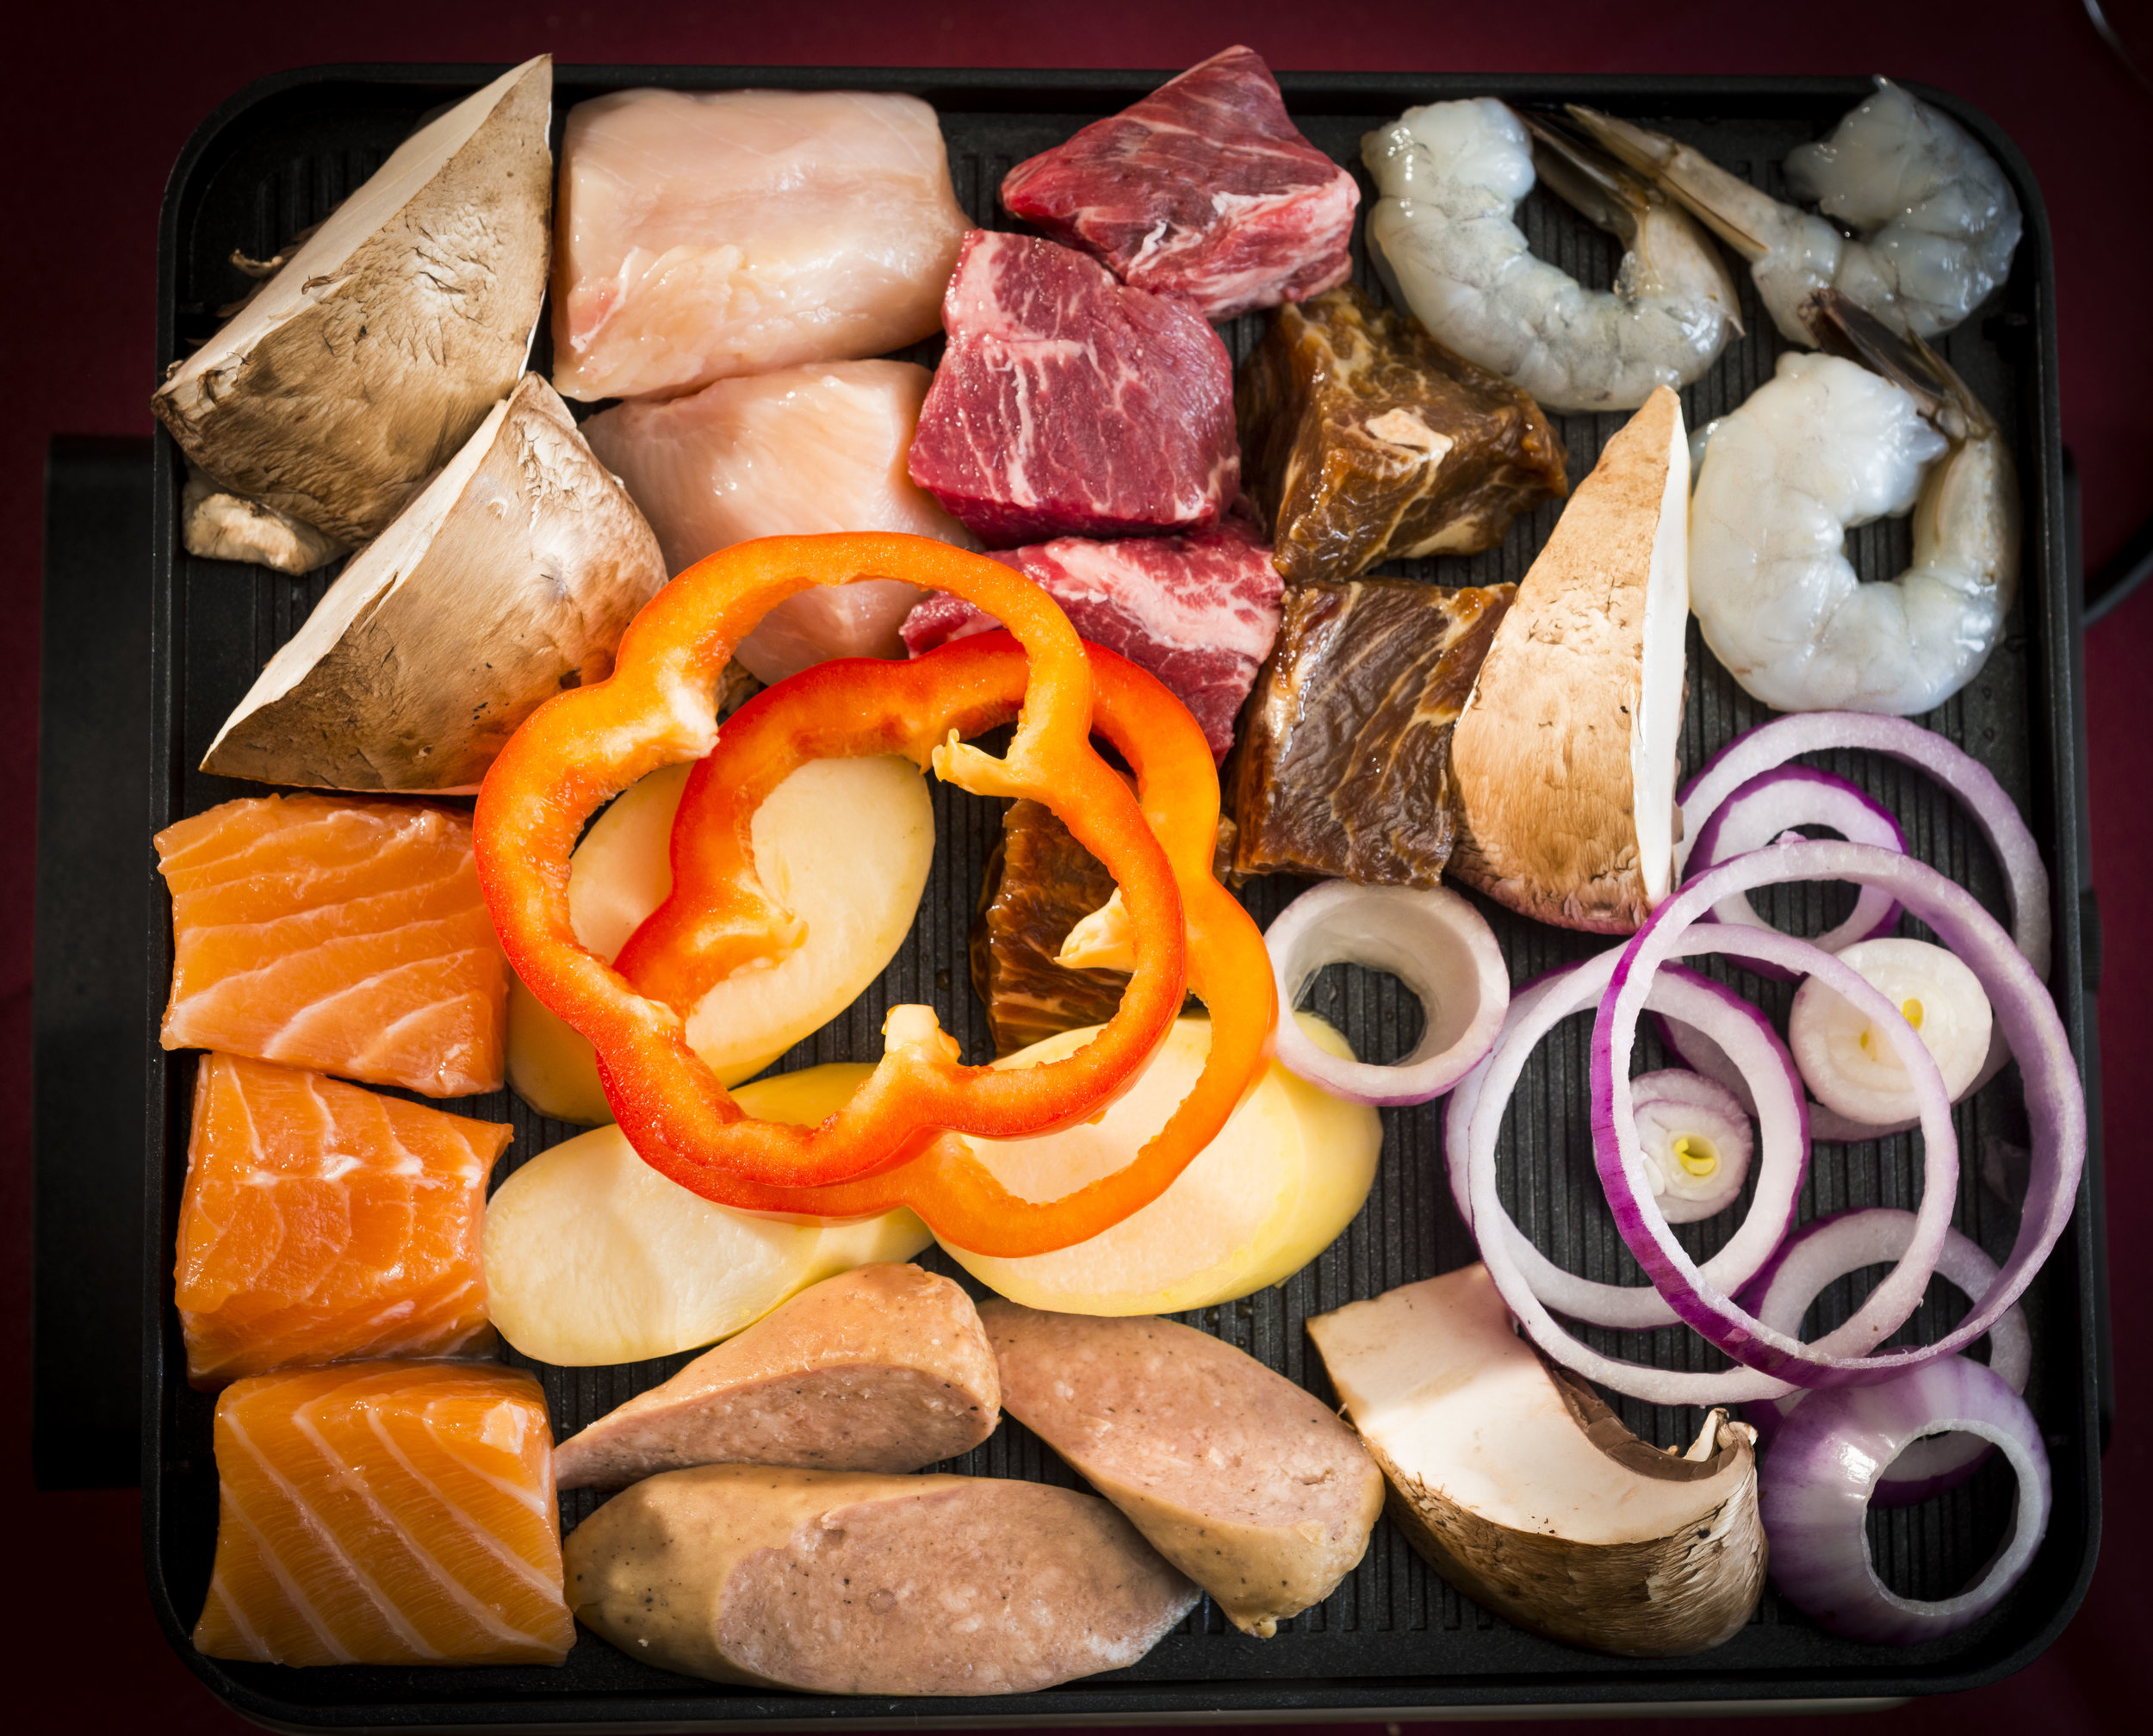 Grilling Meats, Seafood and Vegetables